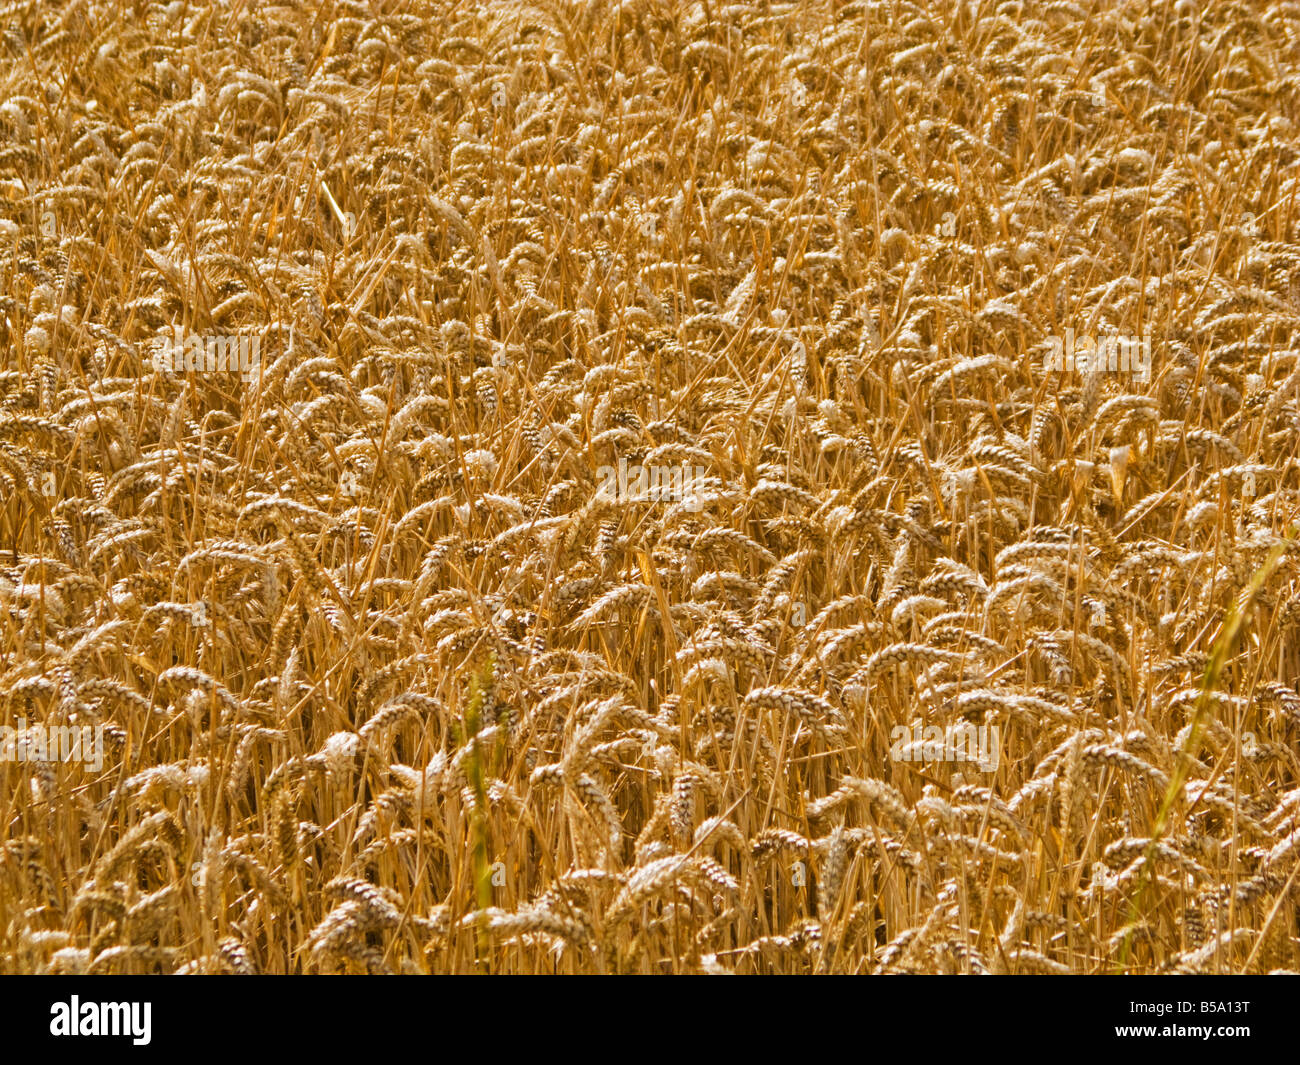 Wheat field full frame - Stock Image